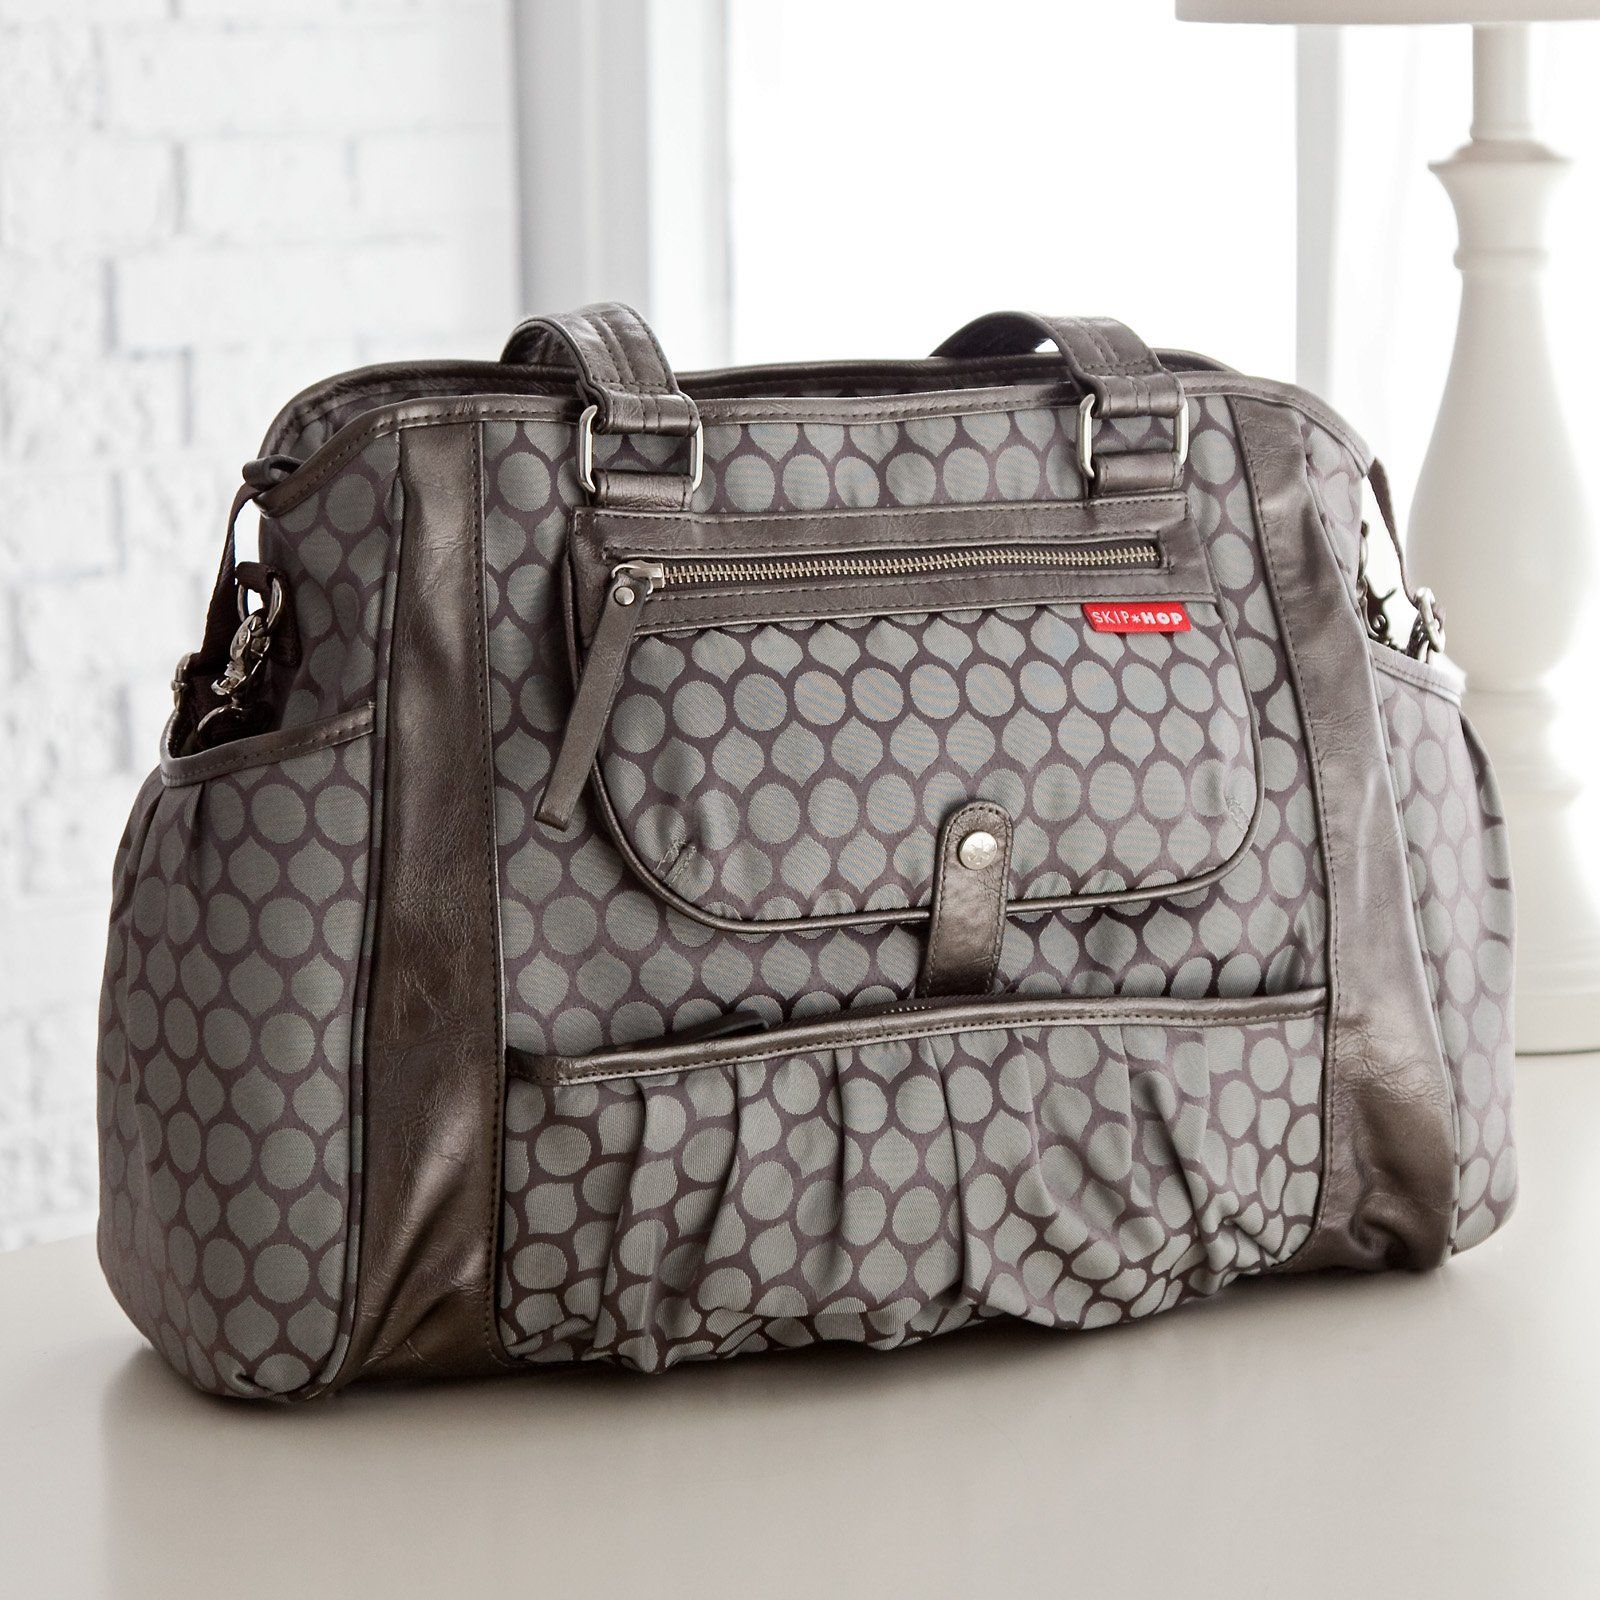 b3bfc3565b08 Have to have it. Skip Hop Studio Diaper Tote - Pewter Dots - $69.98 ...